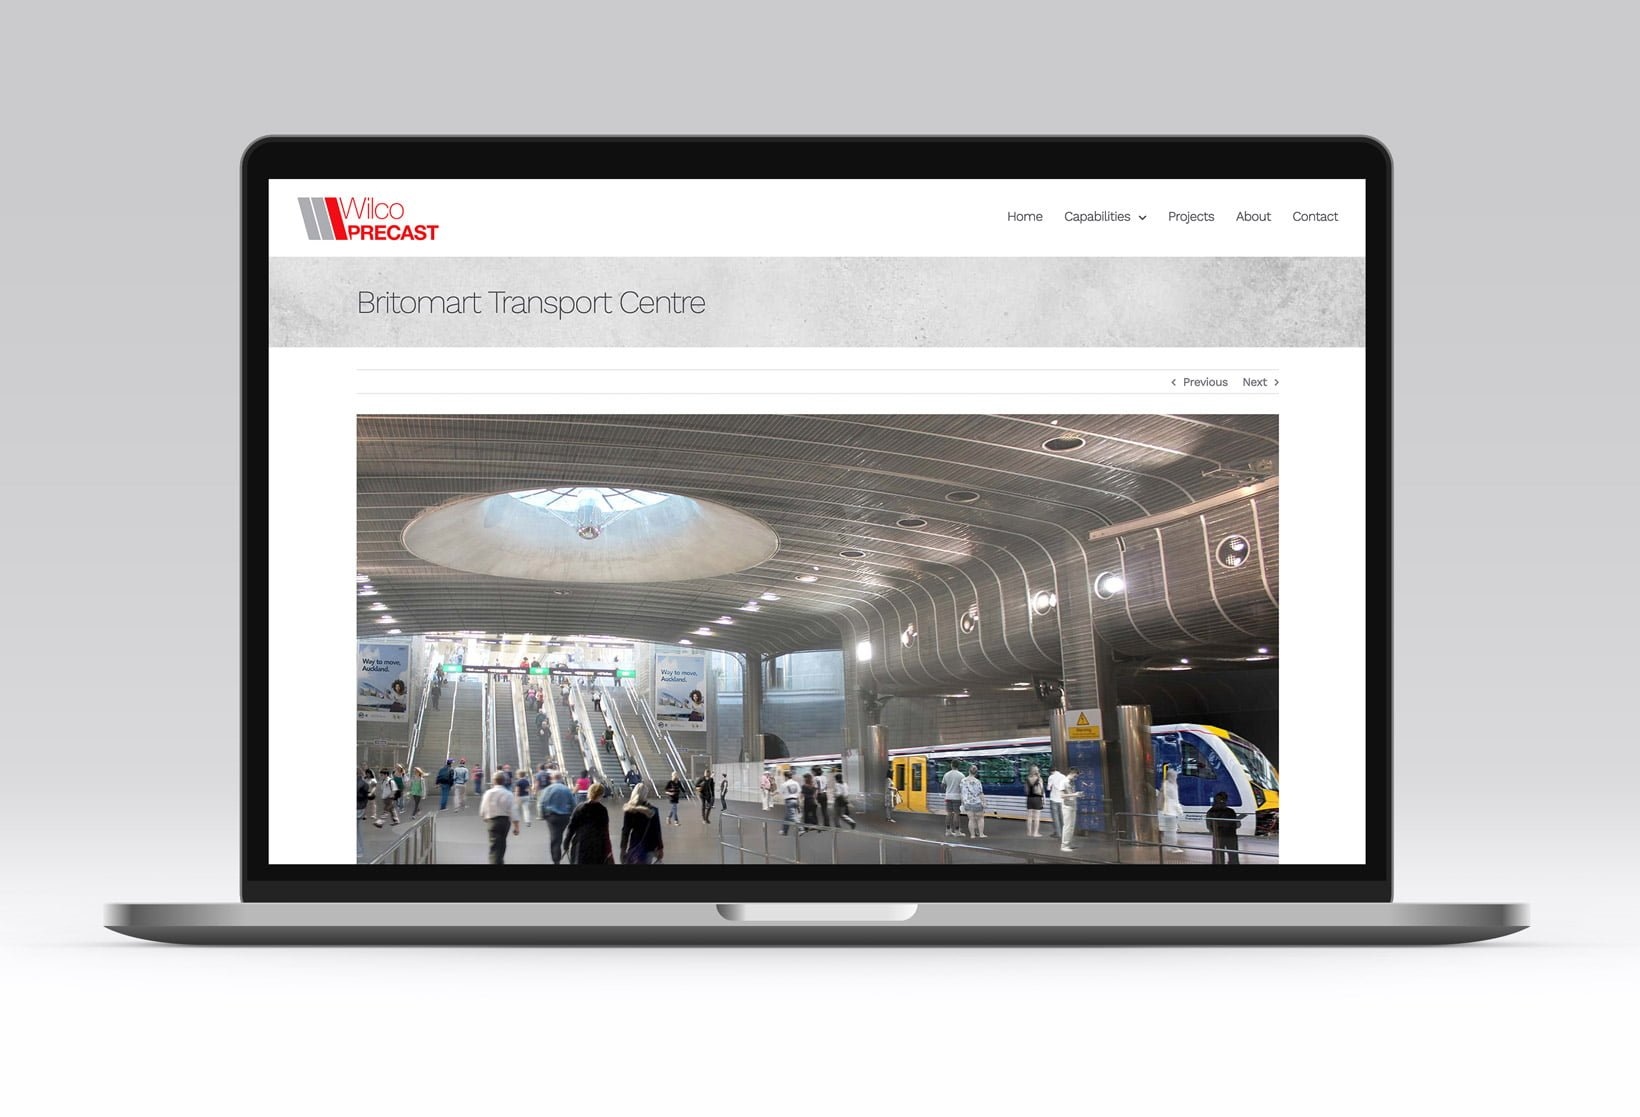 wilco precast website design 2019